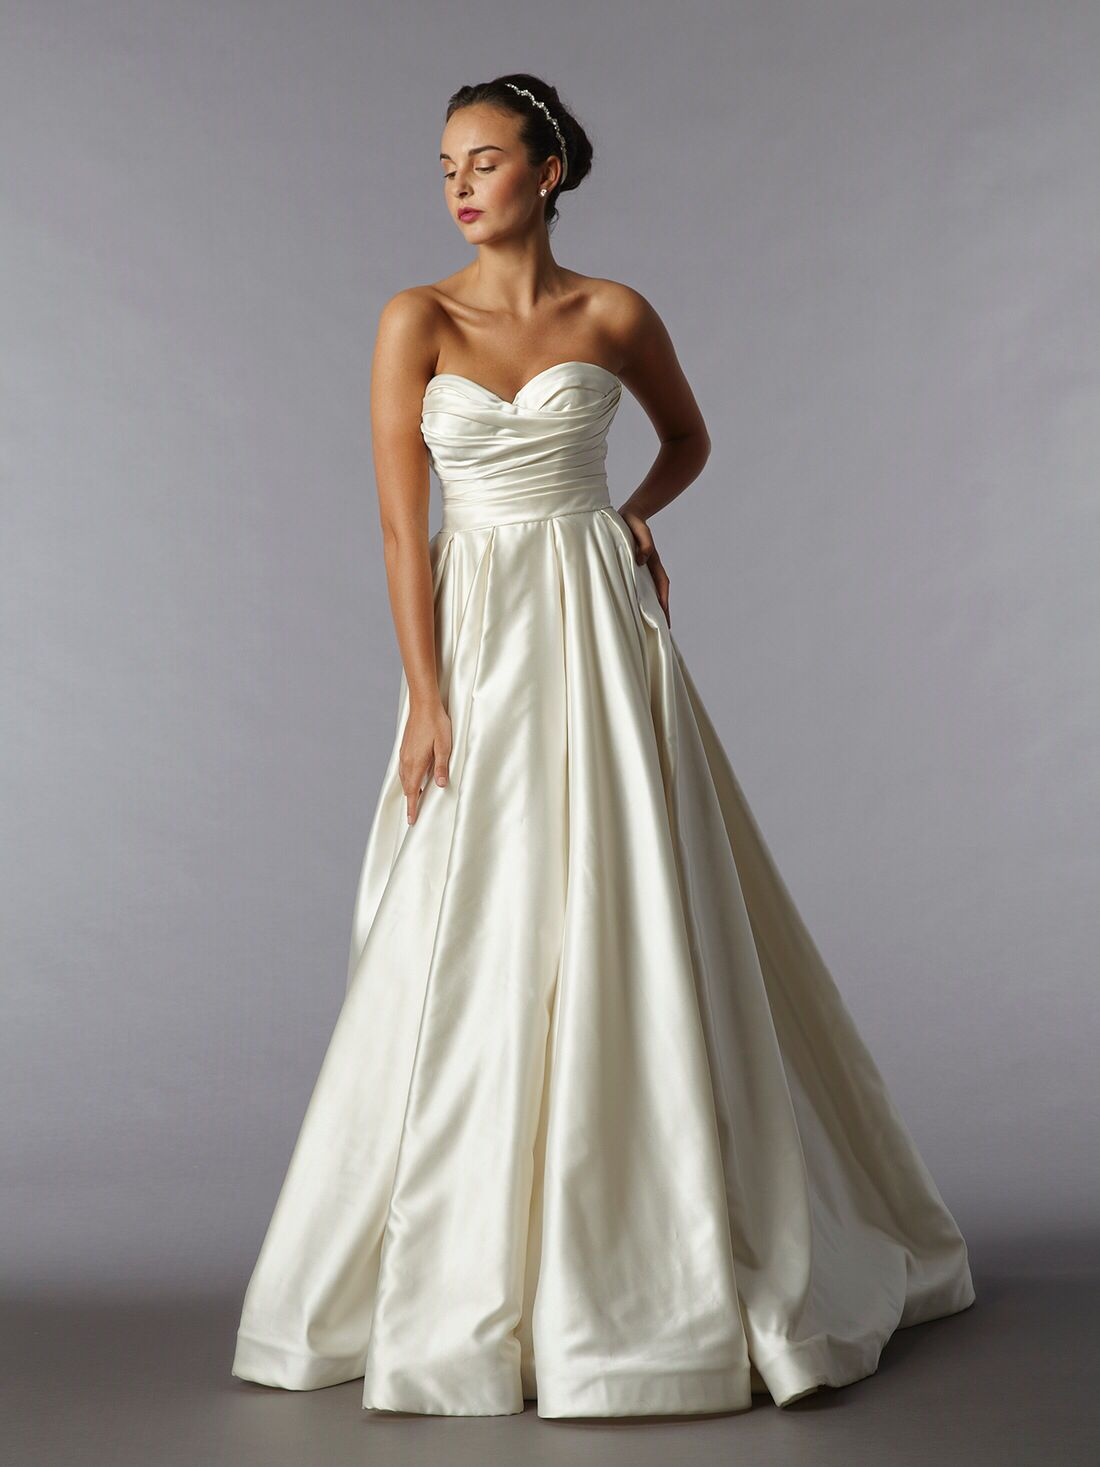 Pnina Tornai strapless a-line gown in silk satin